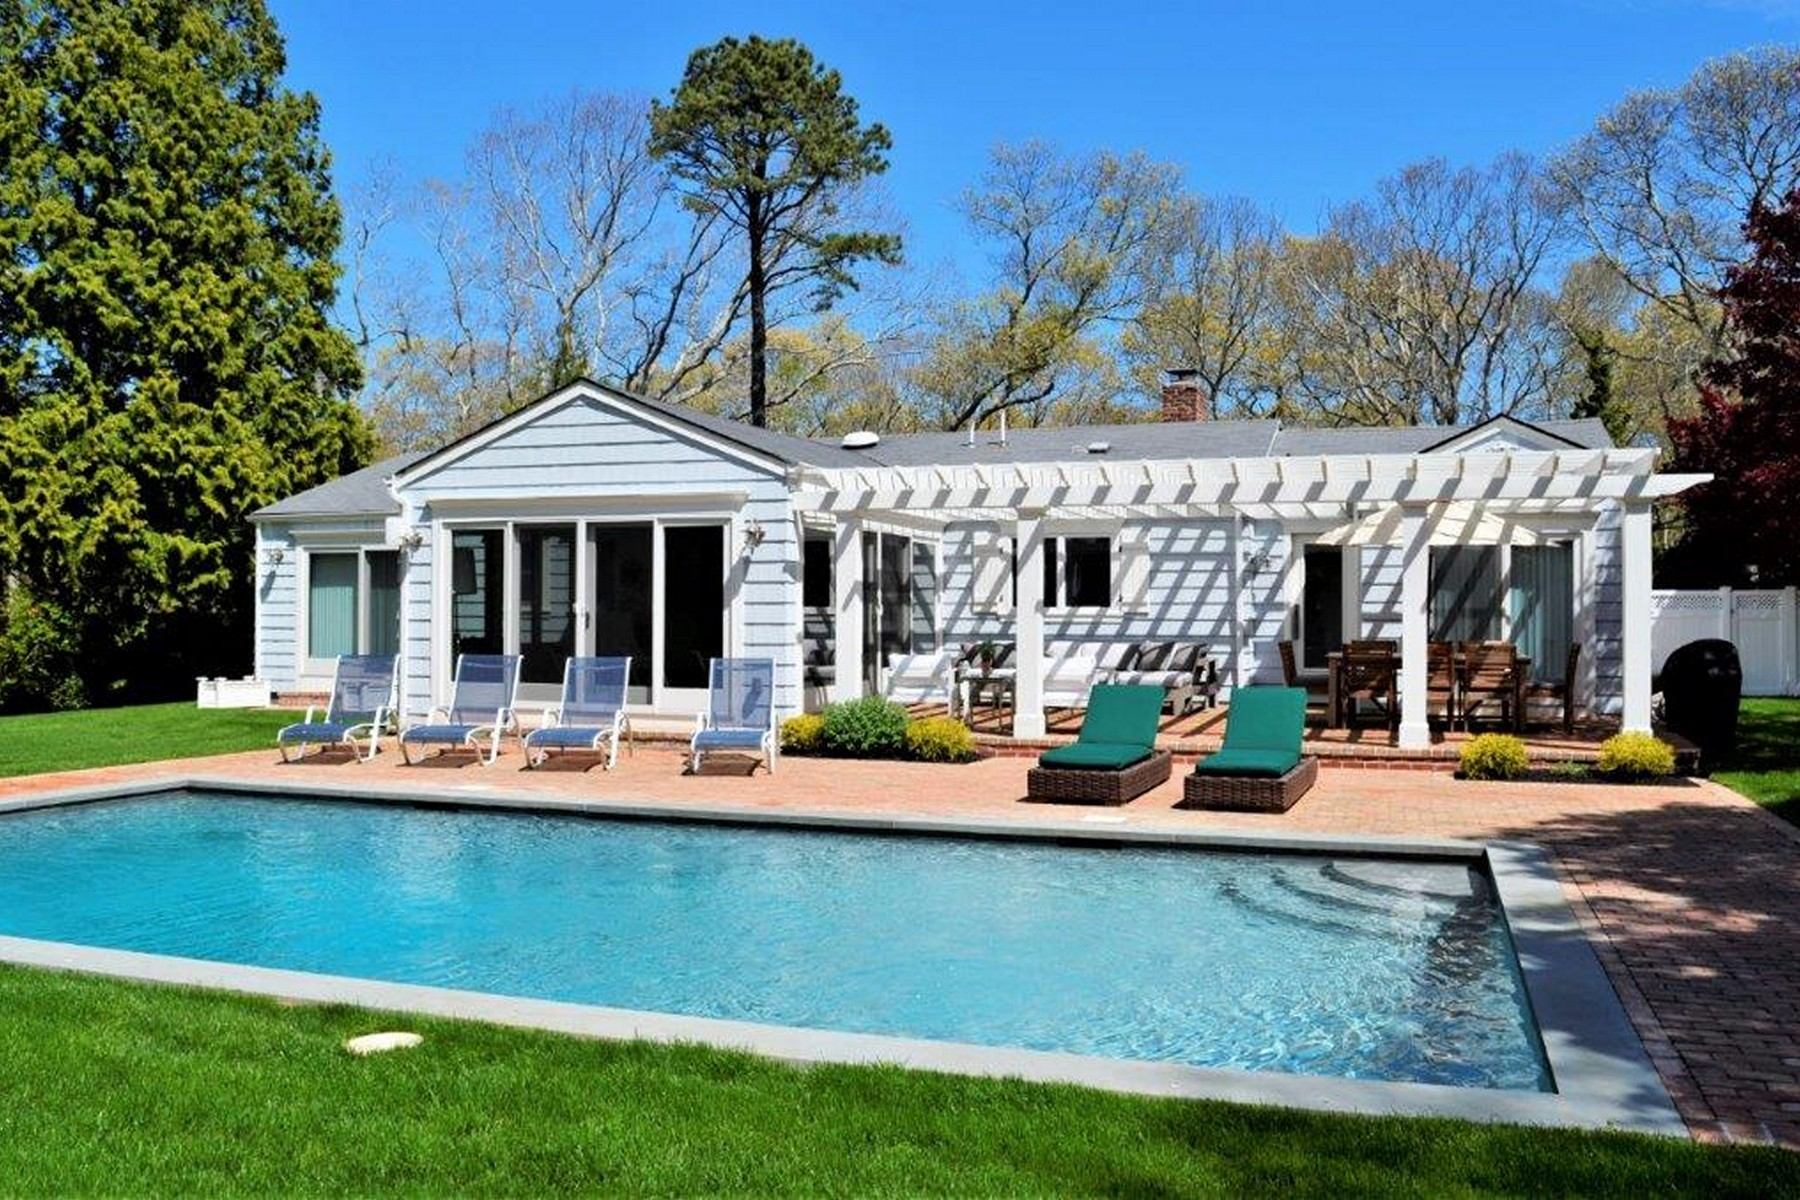 Single Family Home for Active at Westhampton Bch 89 South Rd Westhampton Beach, New York 11978 United States